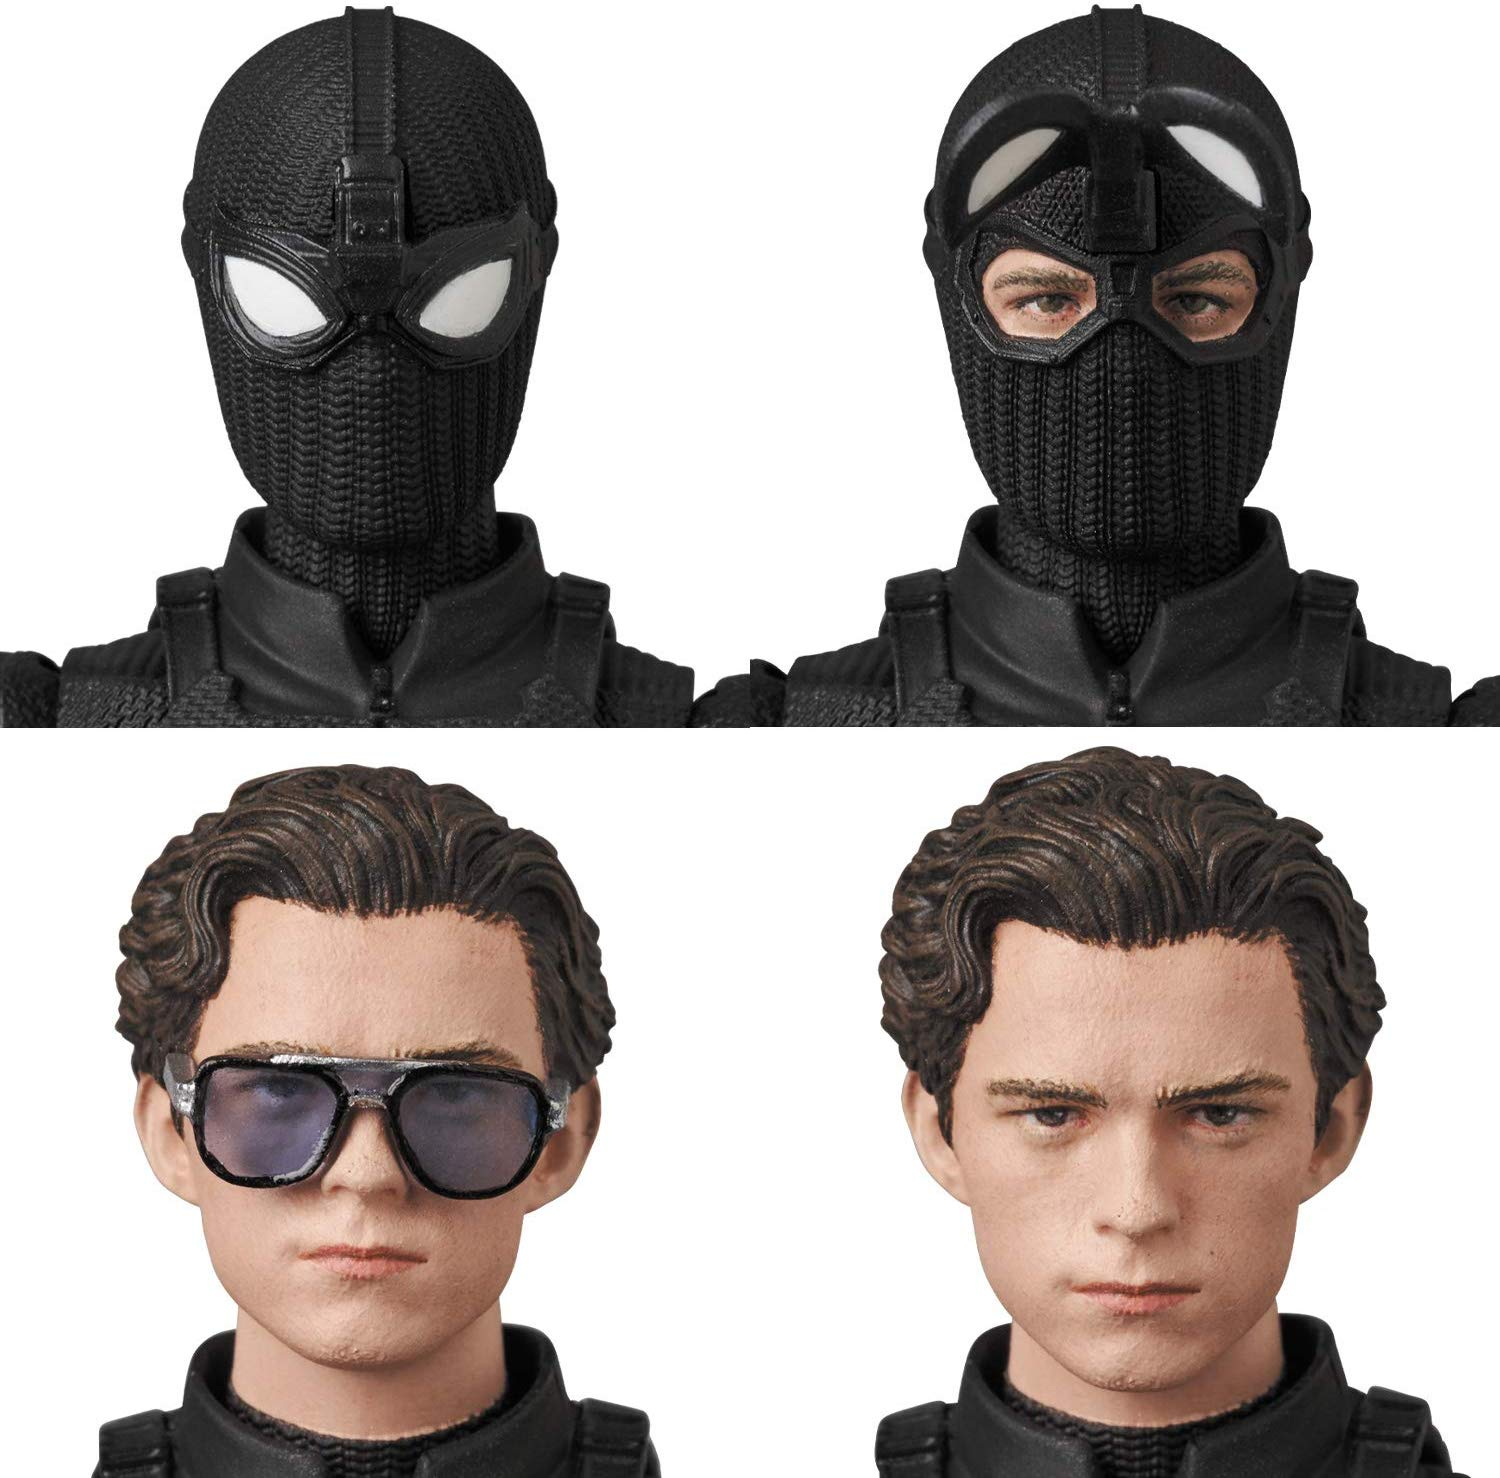 MAFEX-Stealth-Suit-Spider-Man-010